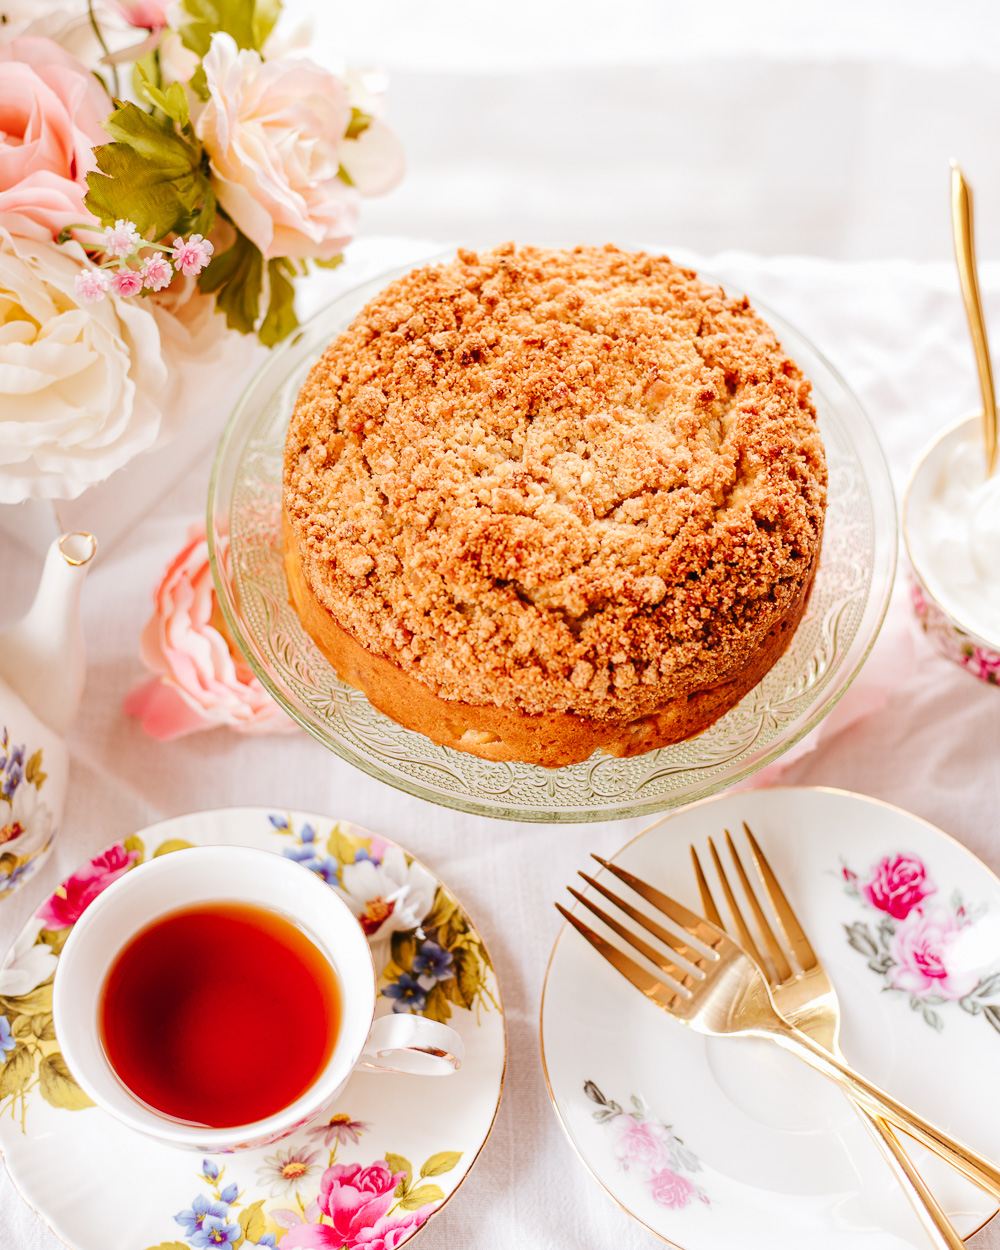 The Healthy Peach Coffee Cake is soft and tender, bursting with the fresh peach flavor and topped with lusciously yummy streusel! It's very easy to make, wholesome and lower calorie than a traditional coffee cake, yet with a few recipe tweaks it doesn't trade in the flavor!